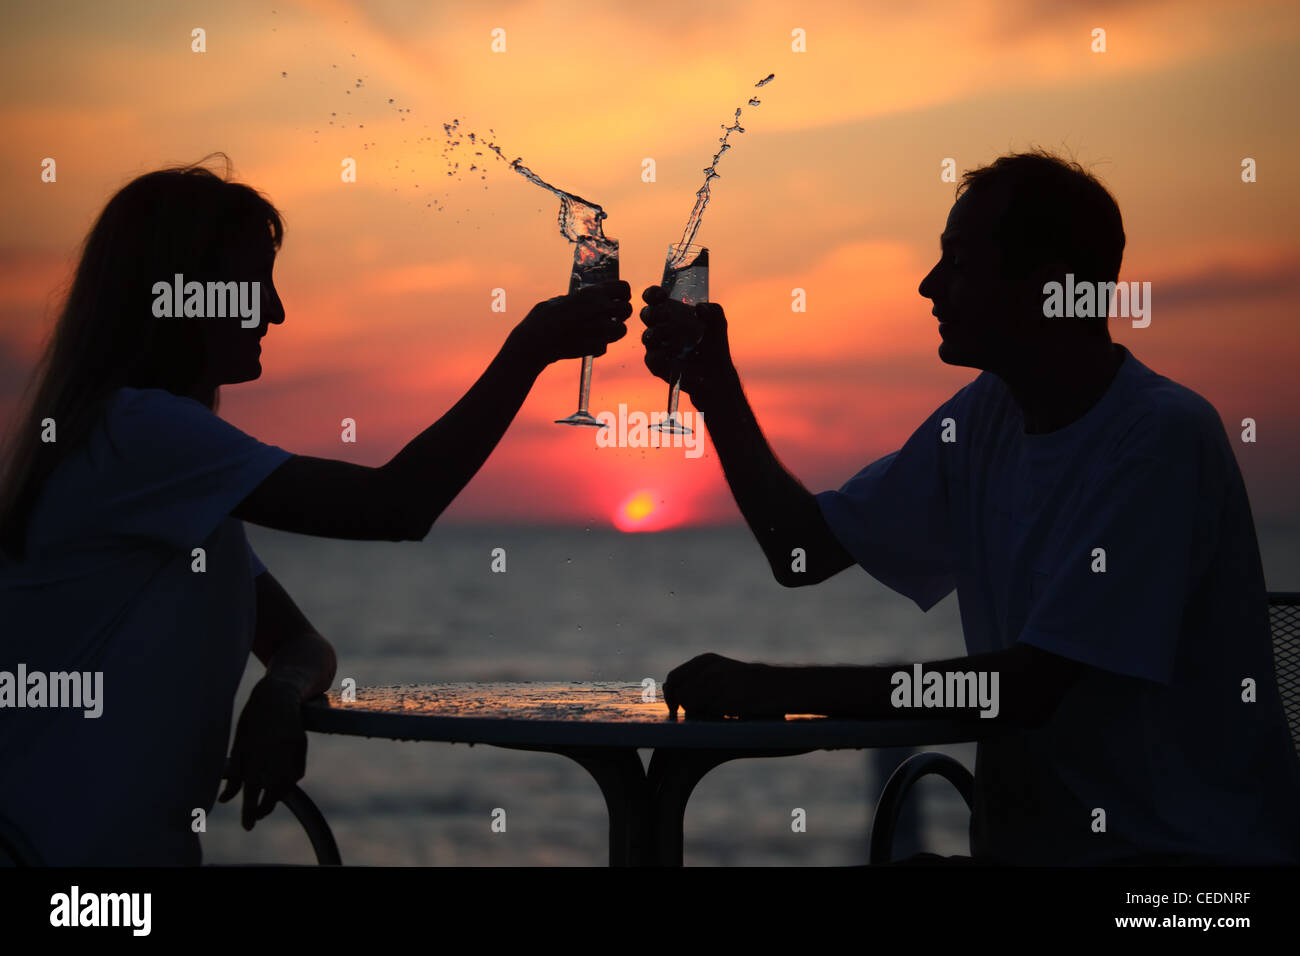 silhouettes of man and woman splash out drink from glass on sea sunset. focus on man - Stock Image